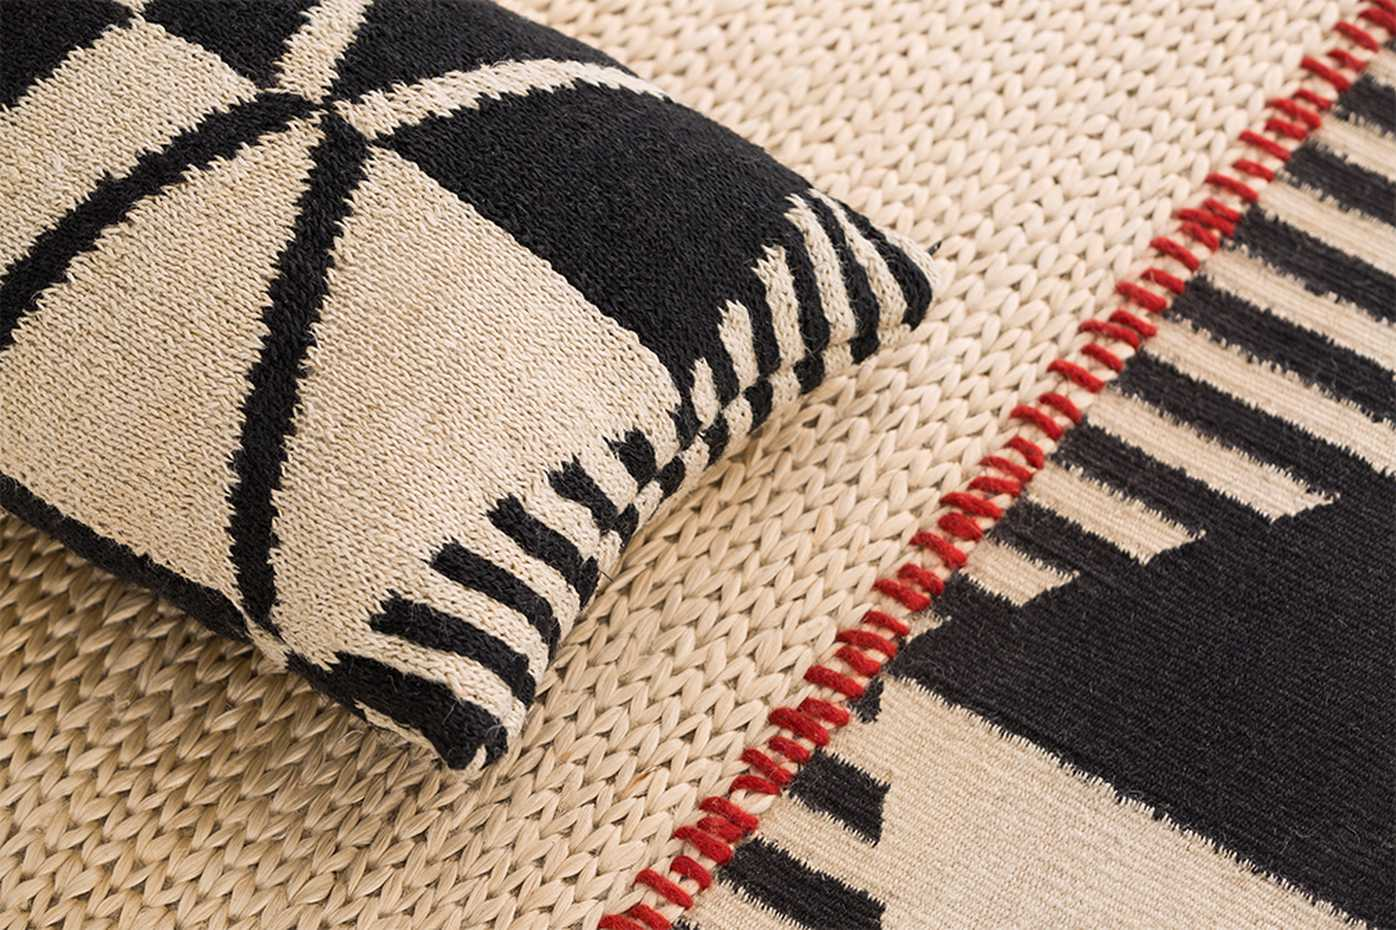 Rustic Chic Cushions by Gan Rugs product image 1